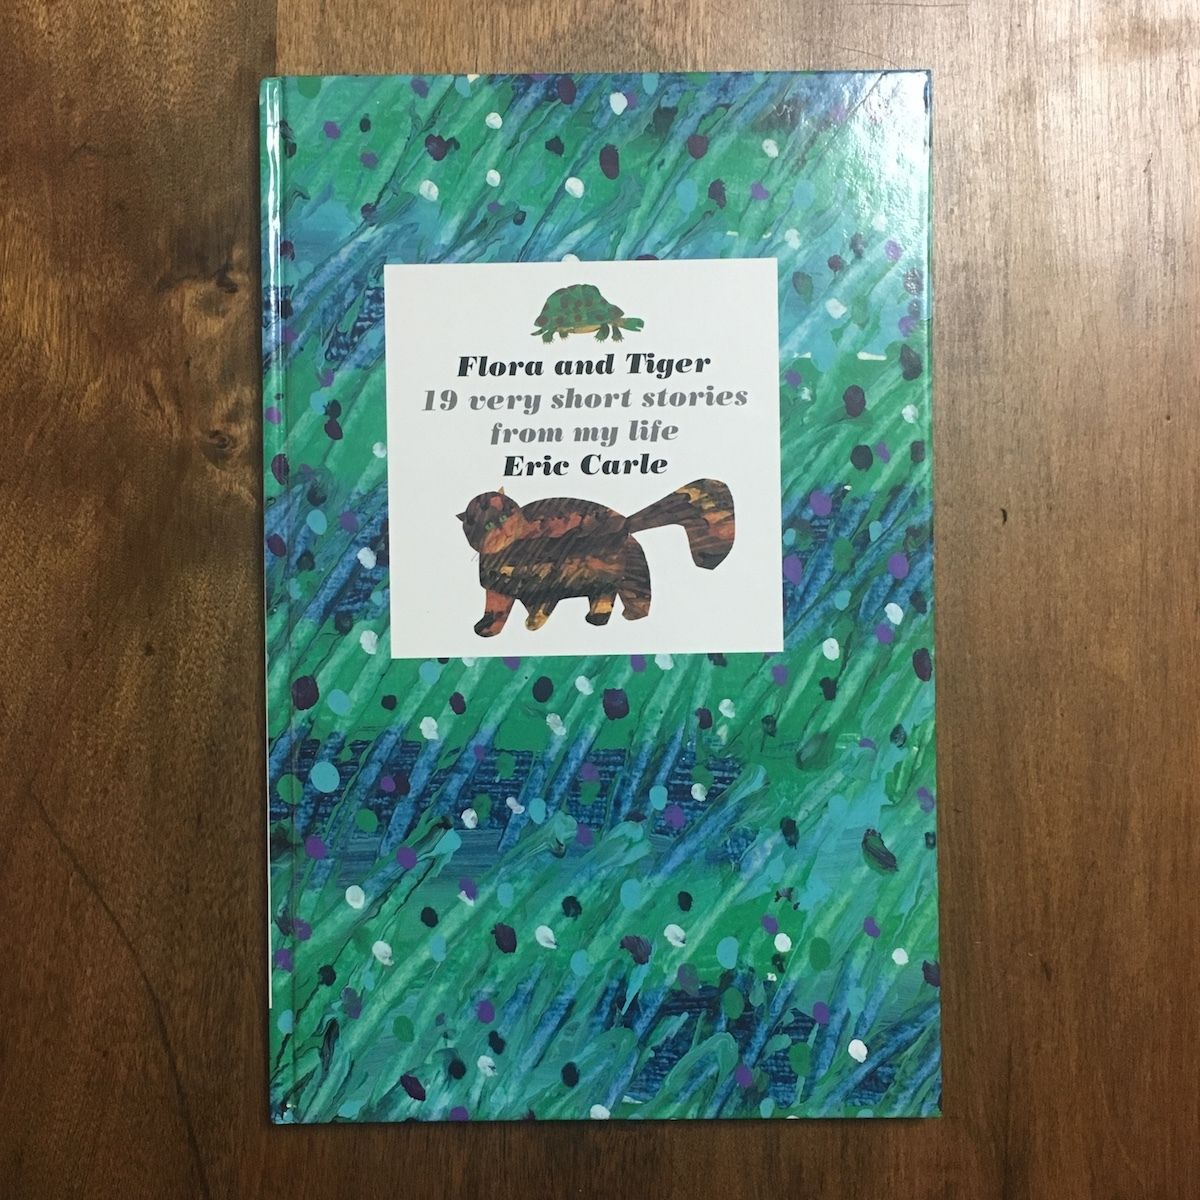 「Flora and Tiger 19 very short stories from my life」Eric Carle(エリック・カール)